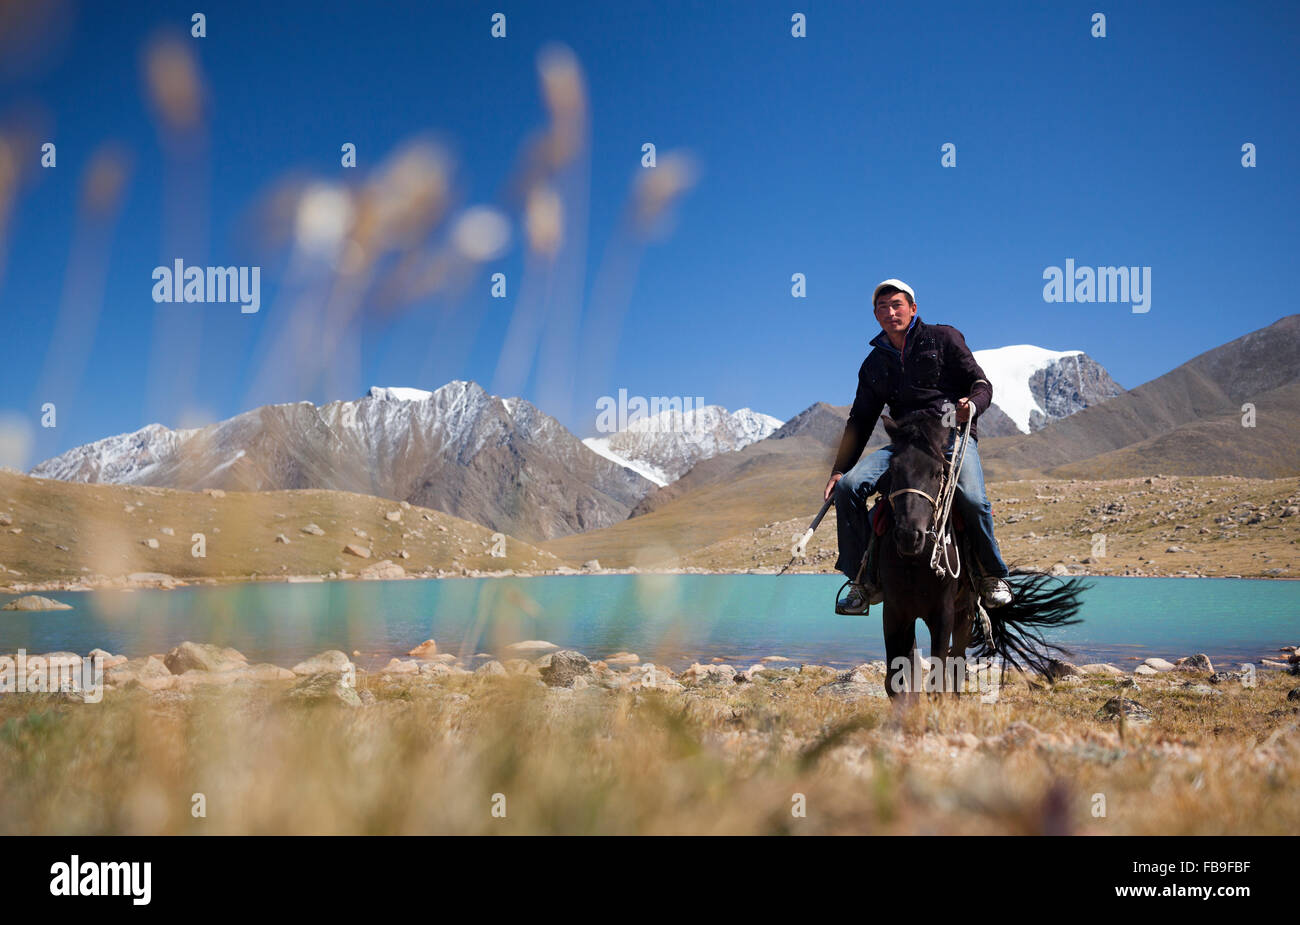 Tsaganaa, a guide and herder riding near a glacial lake in the remote Kharkhiraa Turgen National Park, Mongolia. Stock Photo